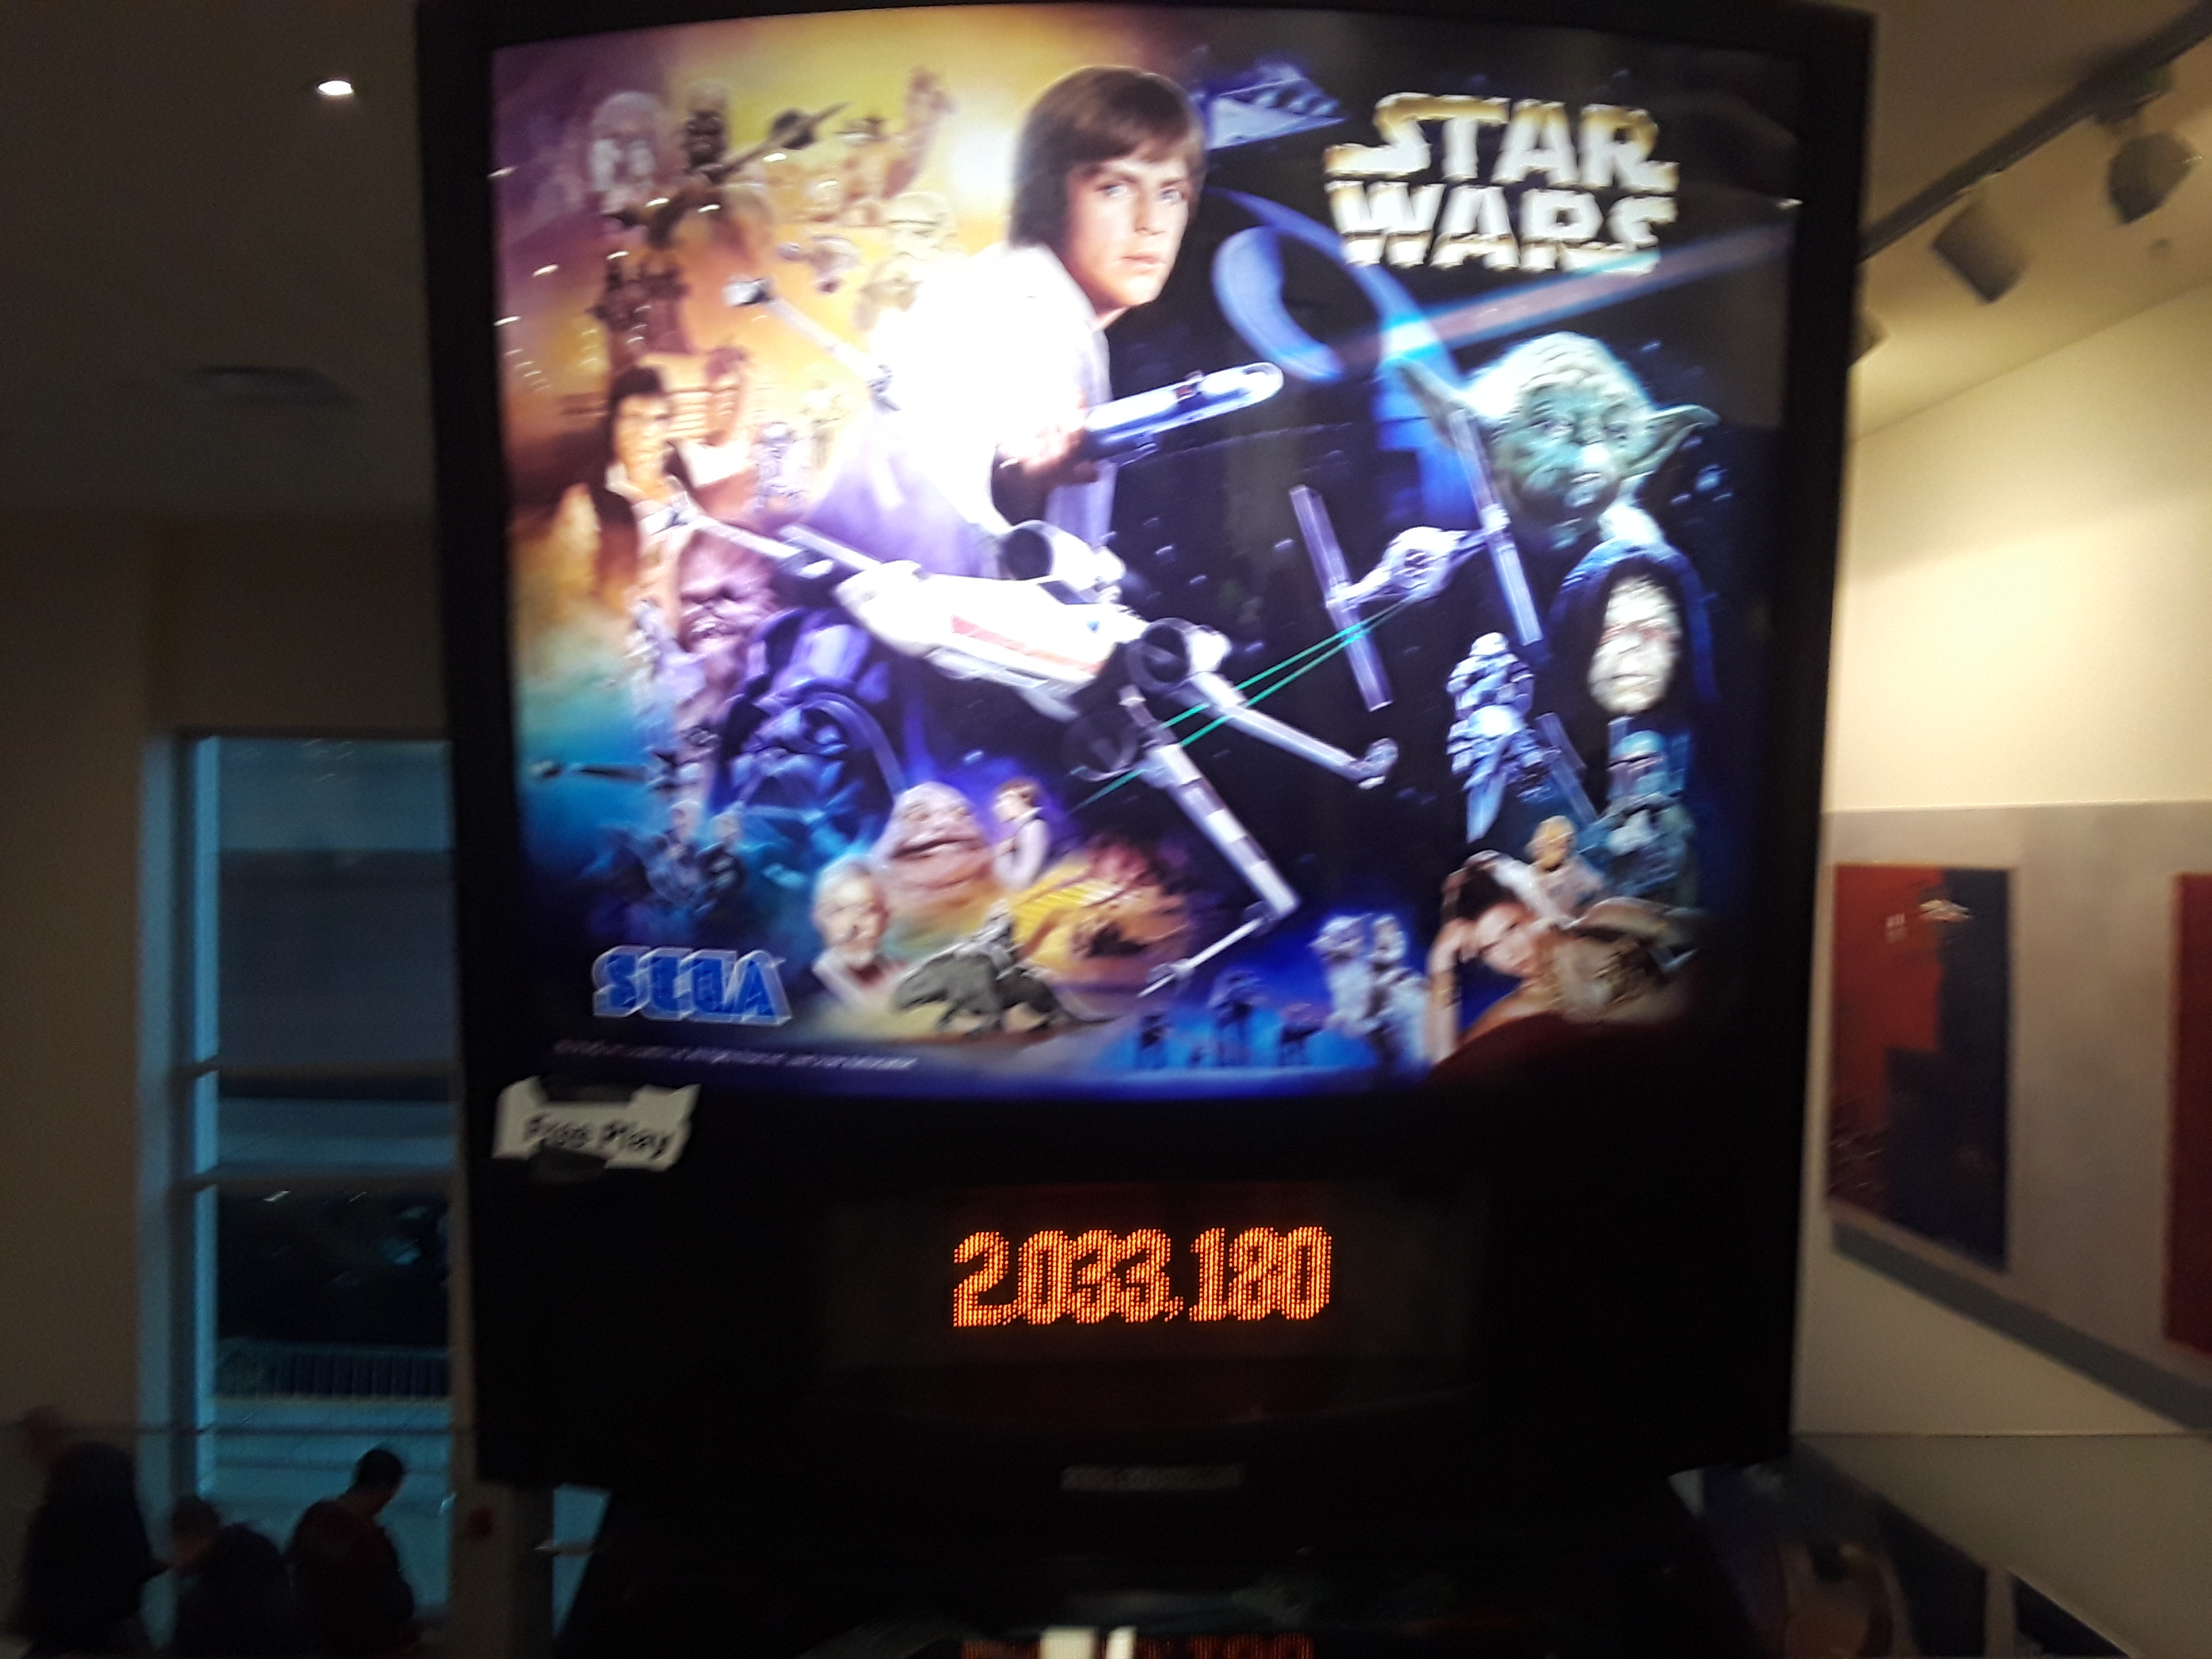 Star Wars Trilogy 2,033,180 points